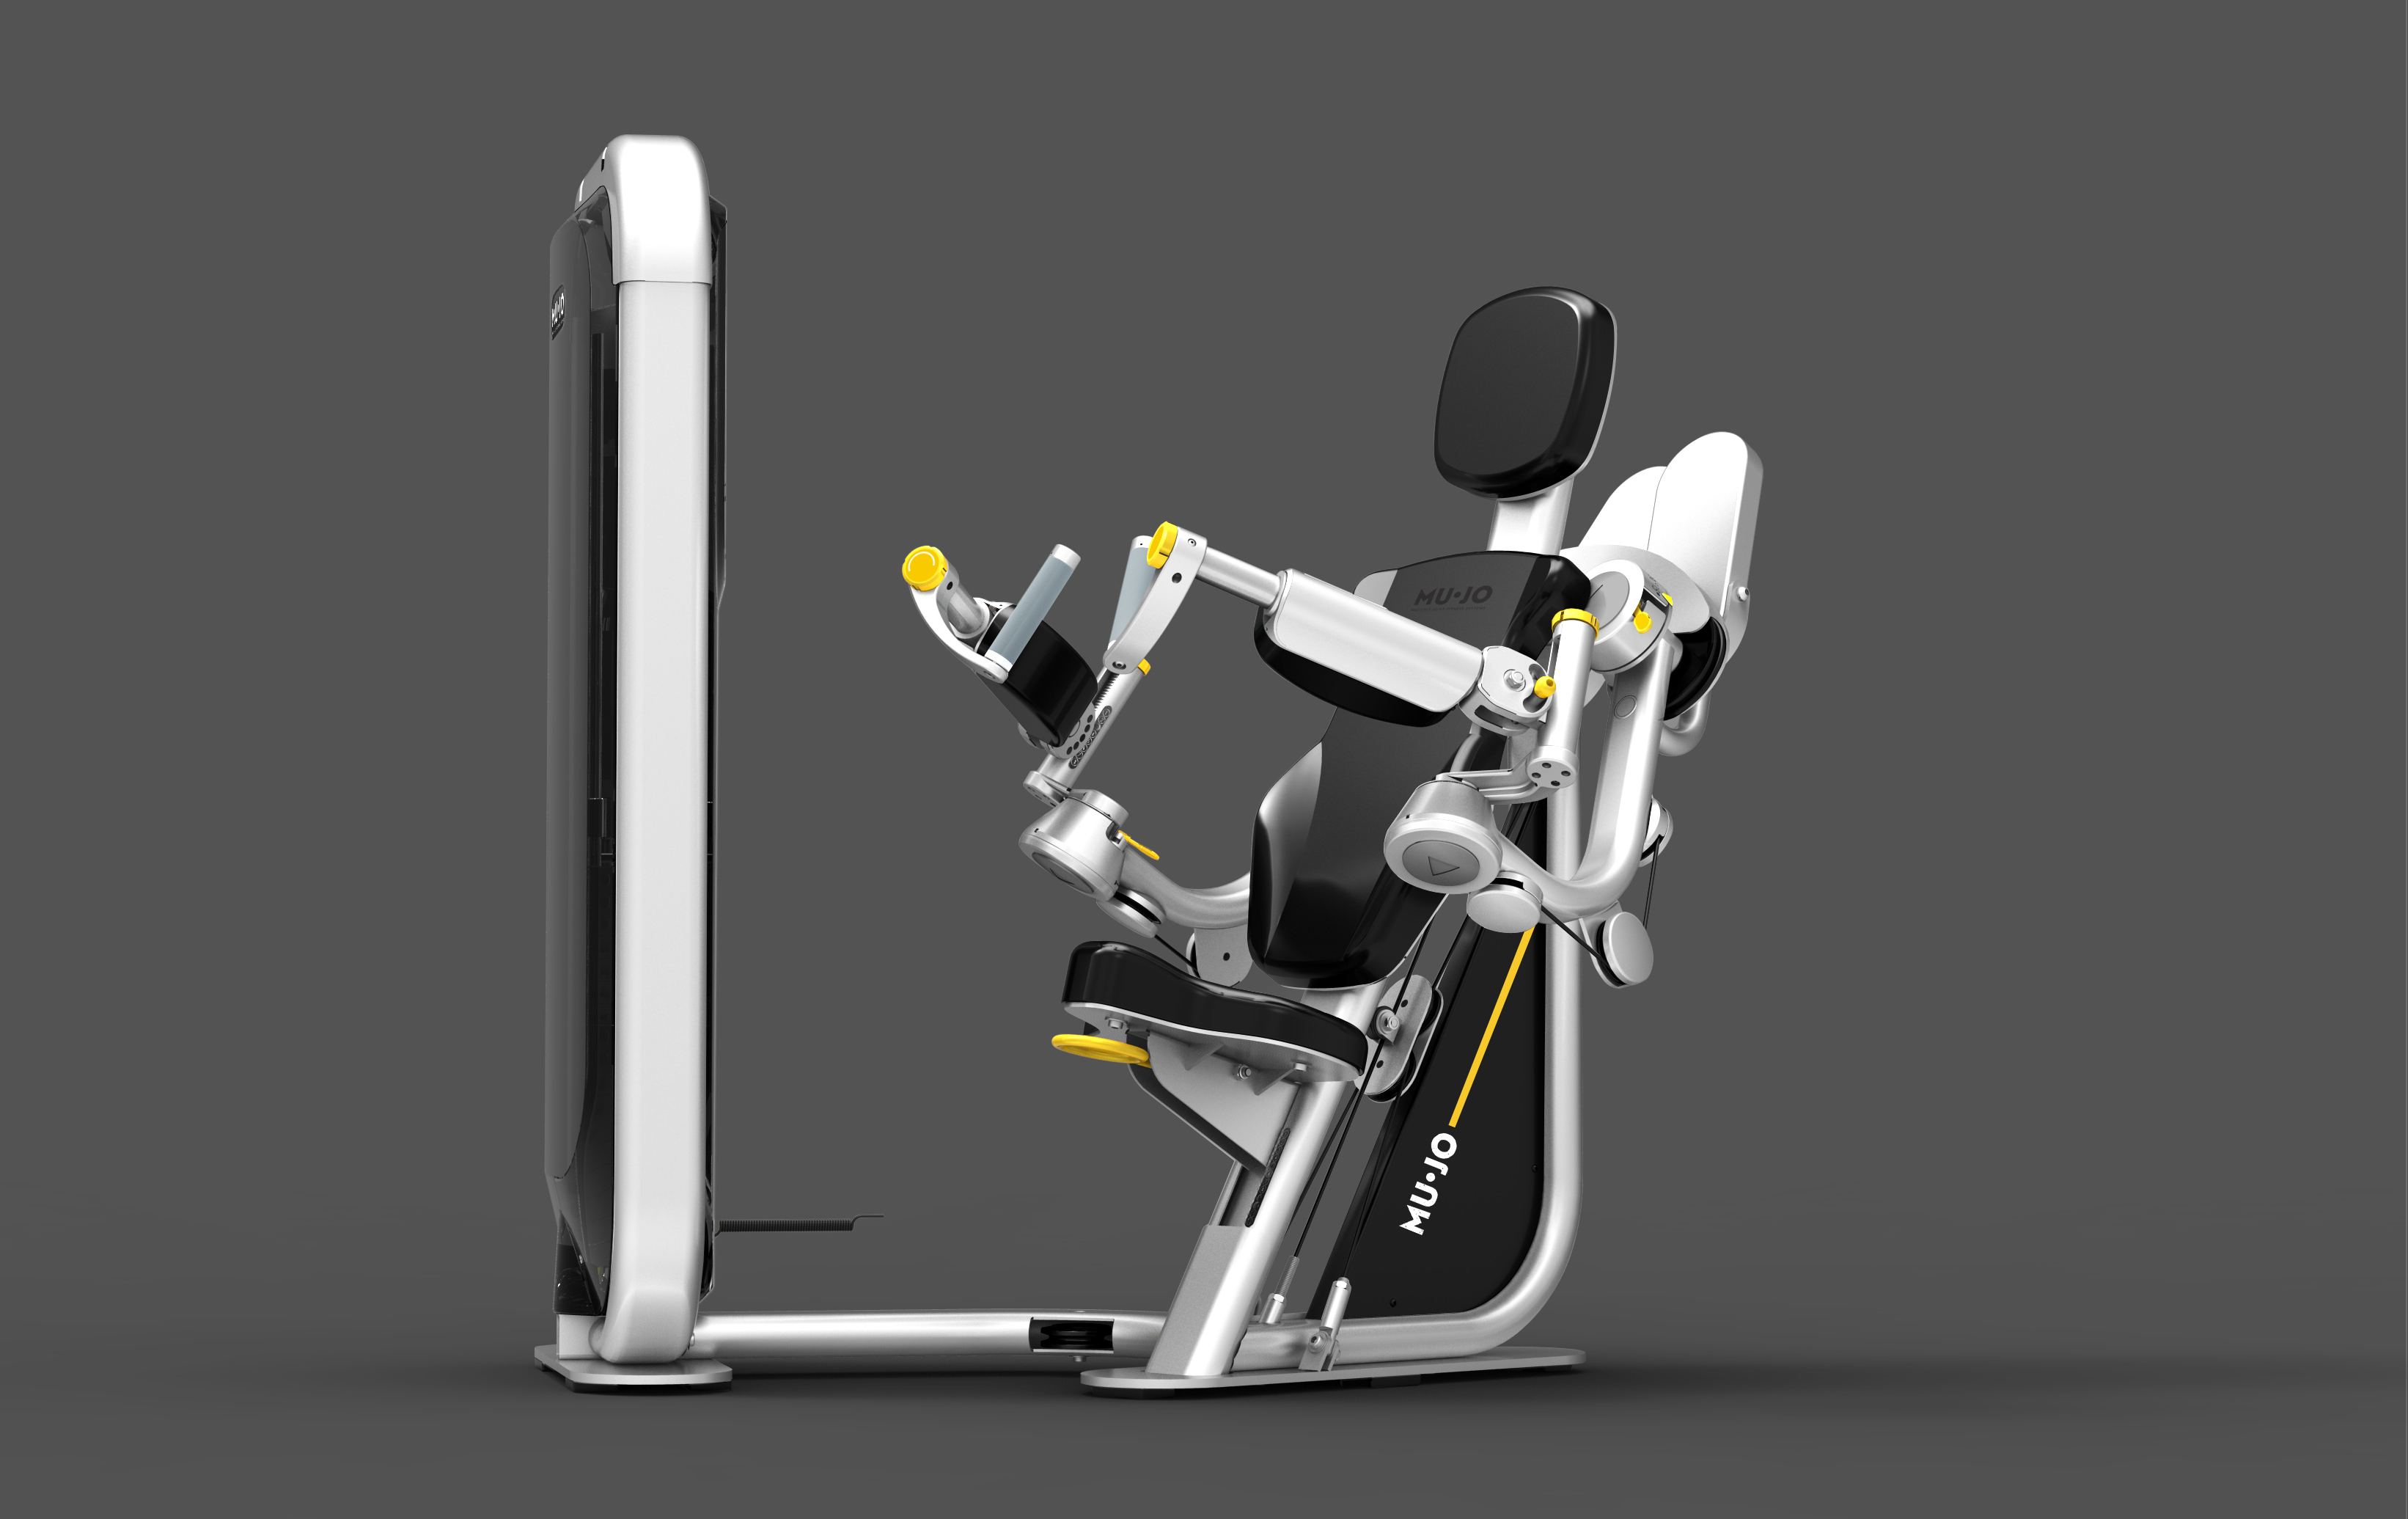 MuJo's multi-axis resistance sports rehab machine